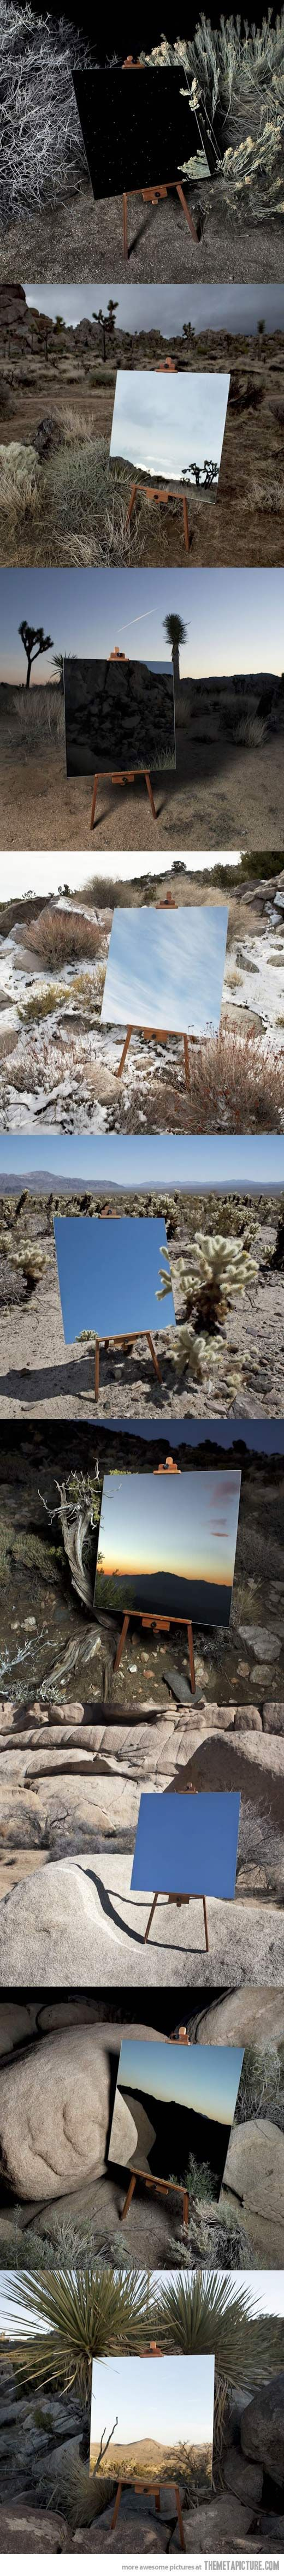 Photographs of a mirror that look like paintings